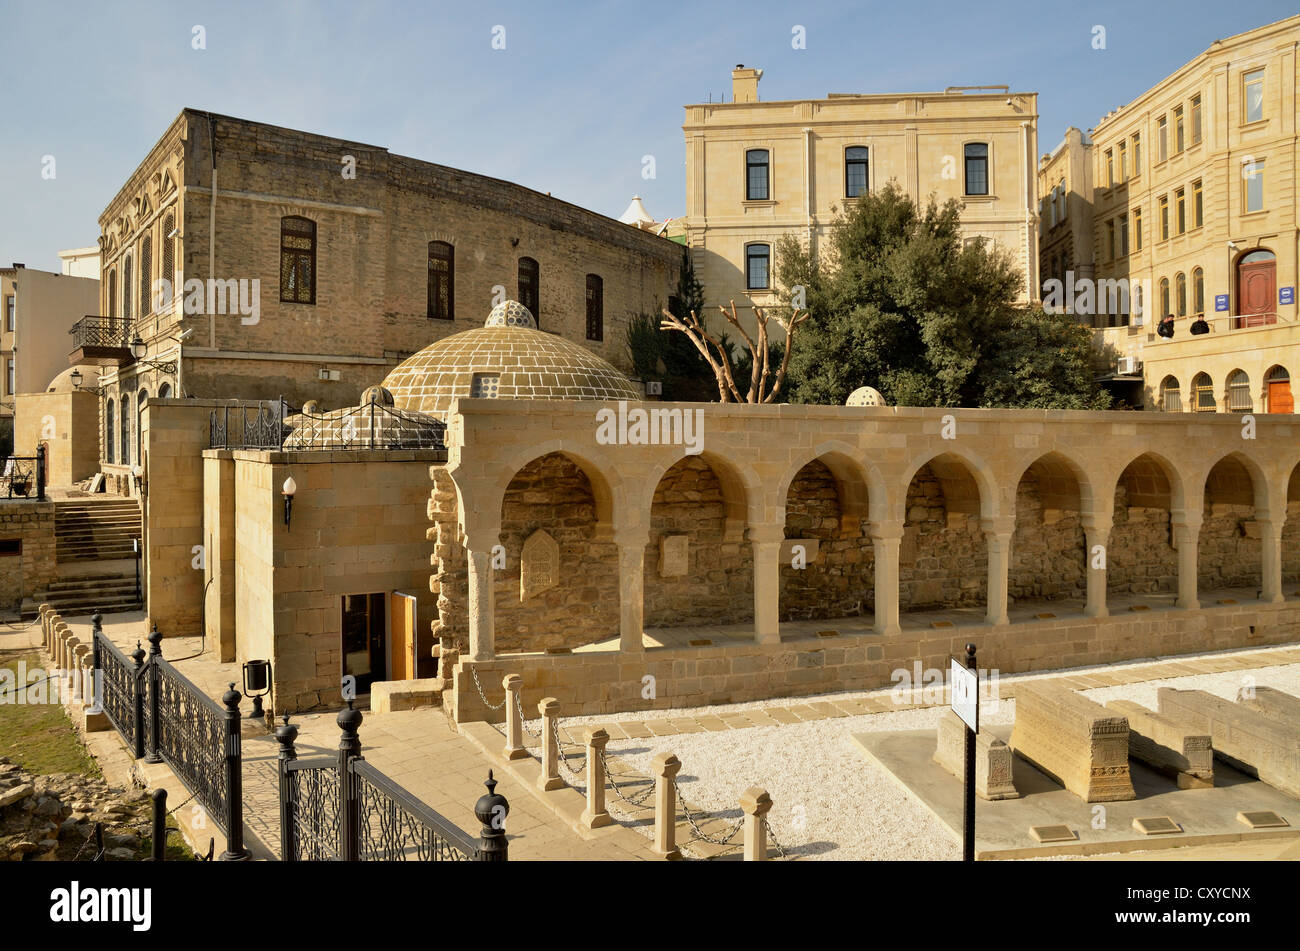 Tombs of the Siratagli Dini Memarliq excavation site in the historic town centre of Baku, UNESCO World Heritage - Stock Image